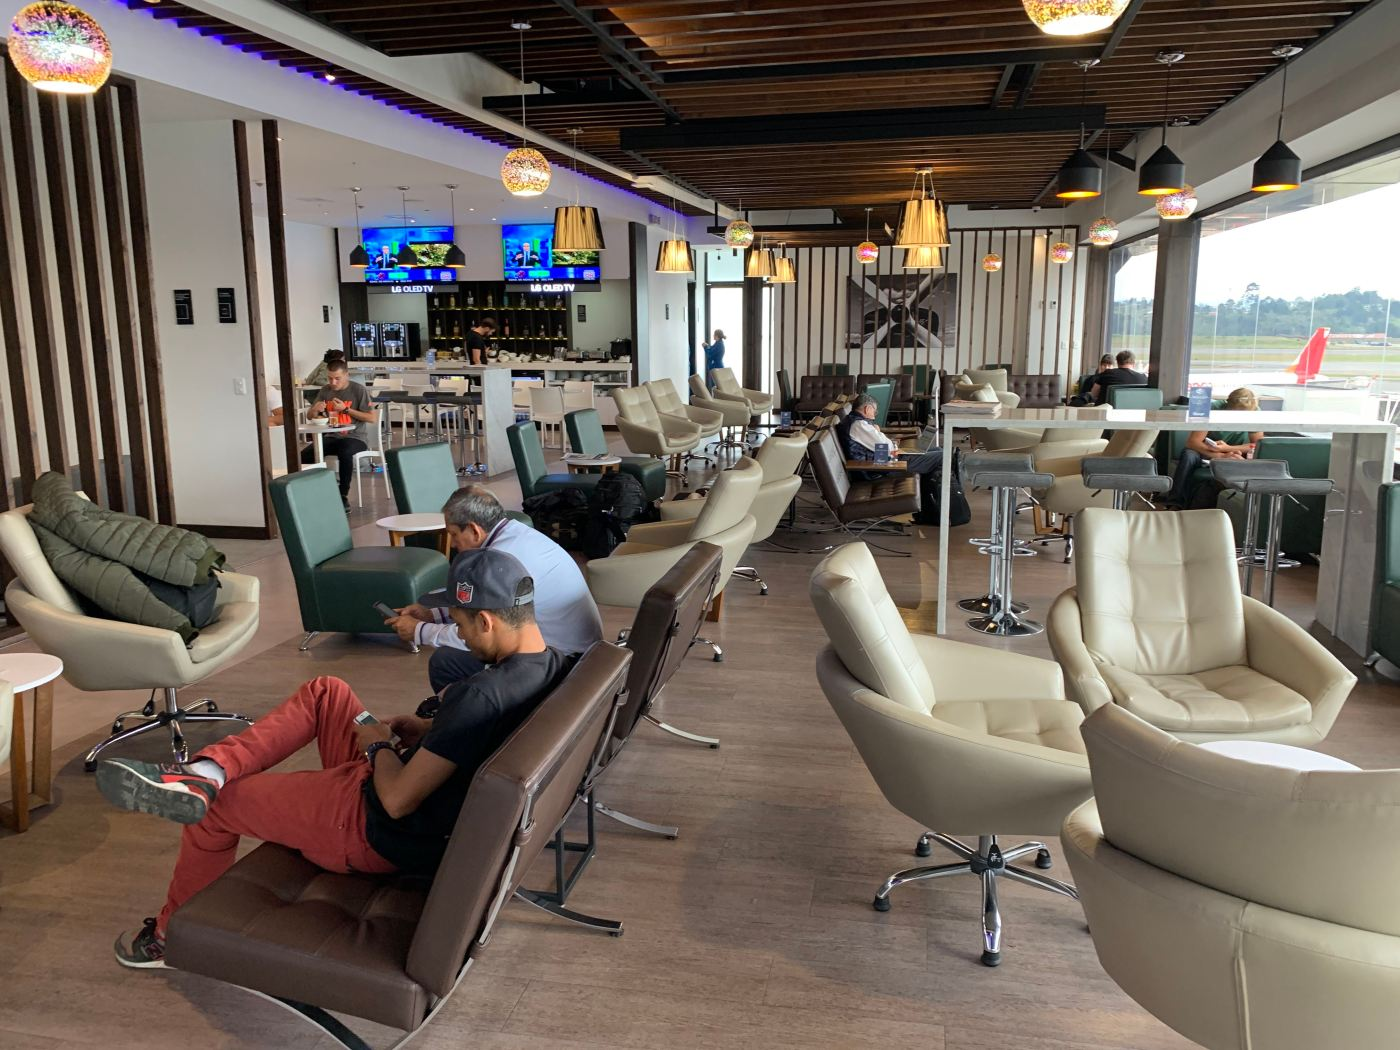 Medellin Airport Domestic Priority Pass Lounge